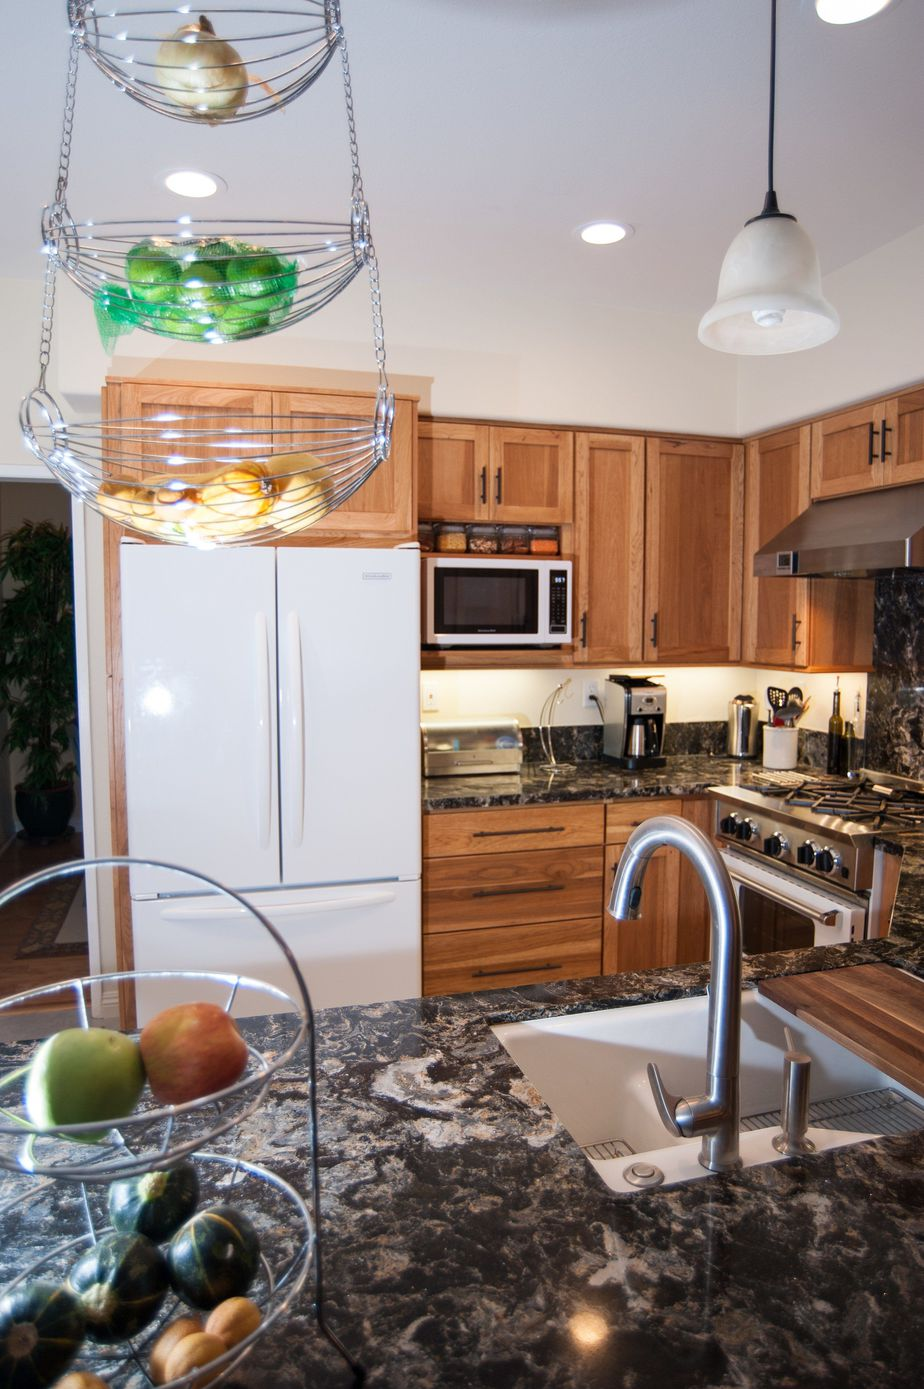 Beautiful White Appliances In A Small Kitchen Remodel With Light Kitchen Cabinets And  Dark Countertops. Kitchen Contractor Classic Home Improvements